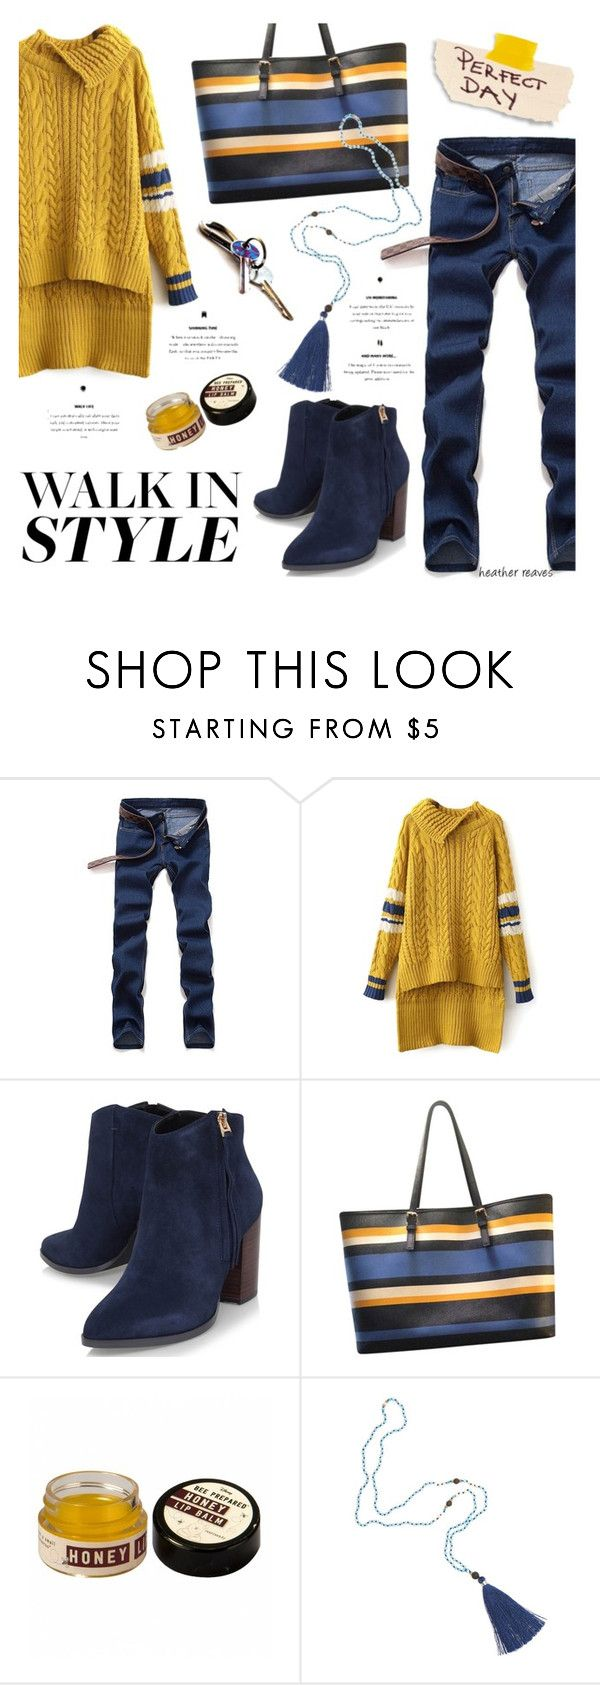 """""""Perfect Day"""" by heather-reaves ❤ liked on Polyvore featuring Carvela, Michael Kors and Disney"""